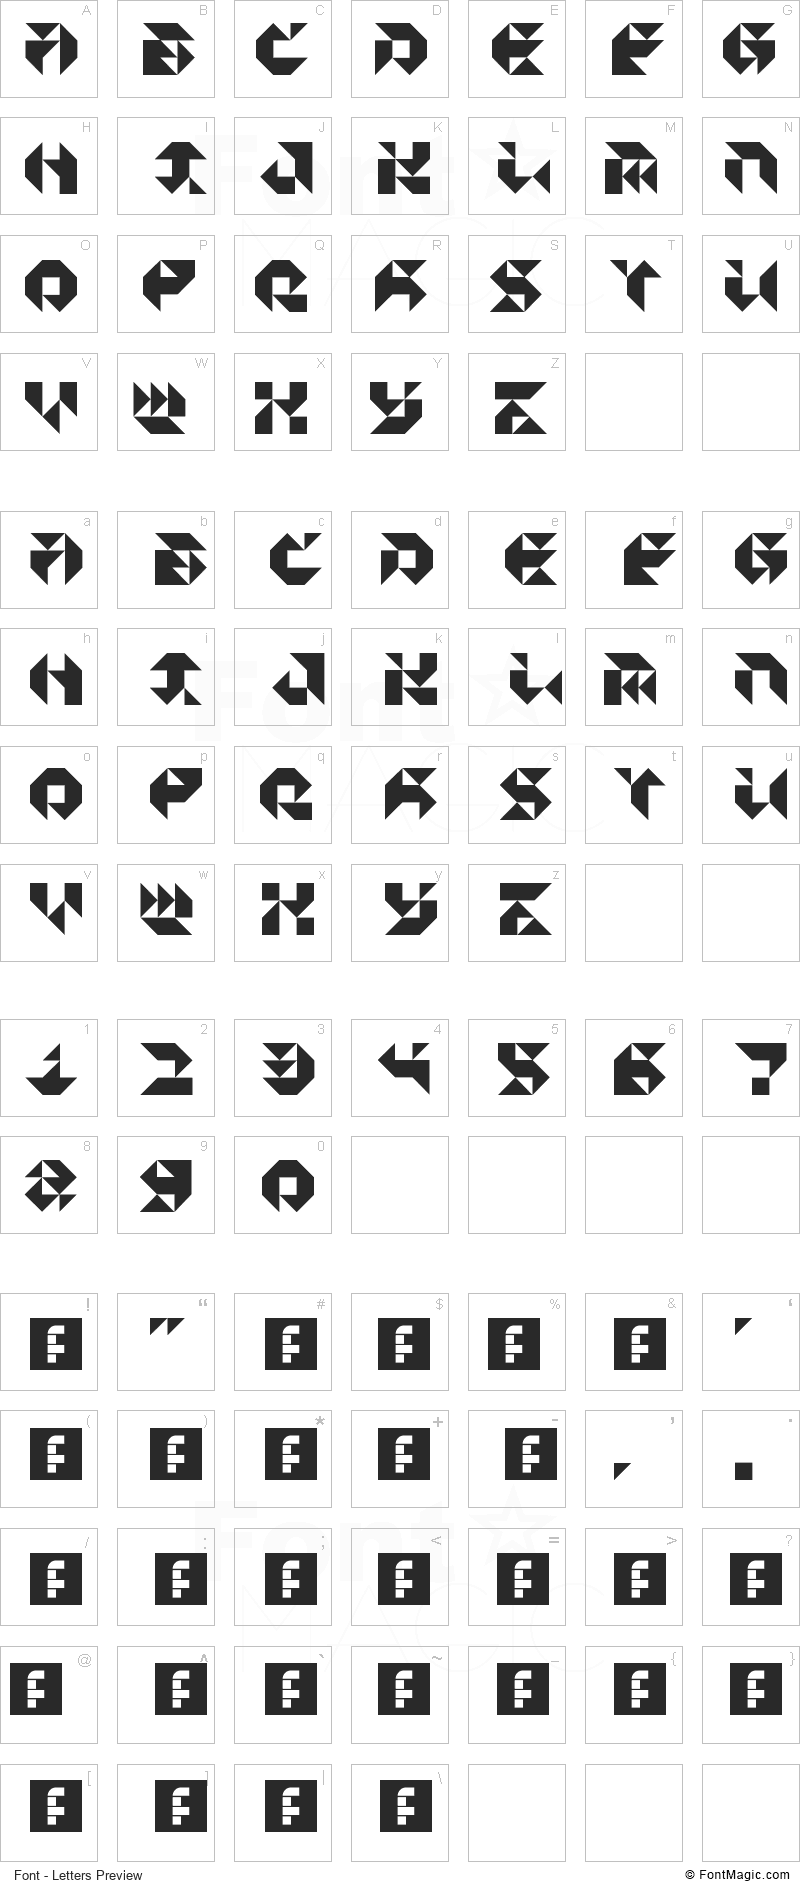 Particulator III Font - All Latters Preview Chart